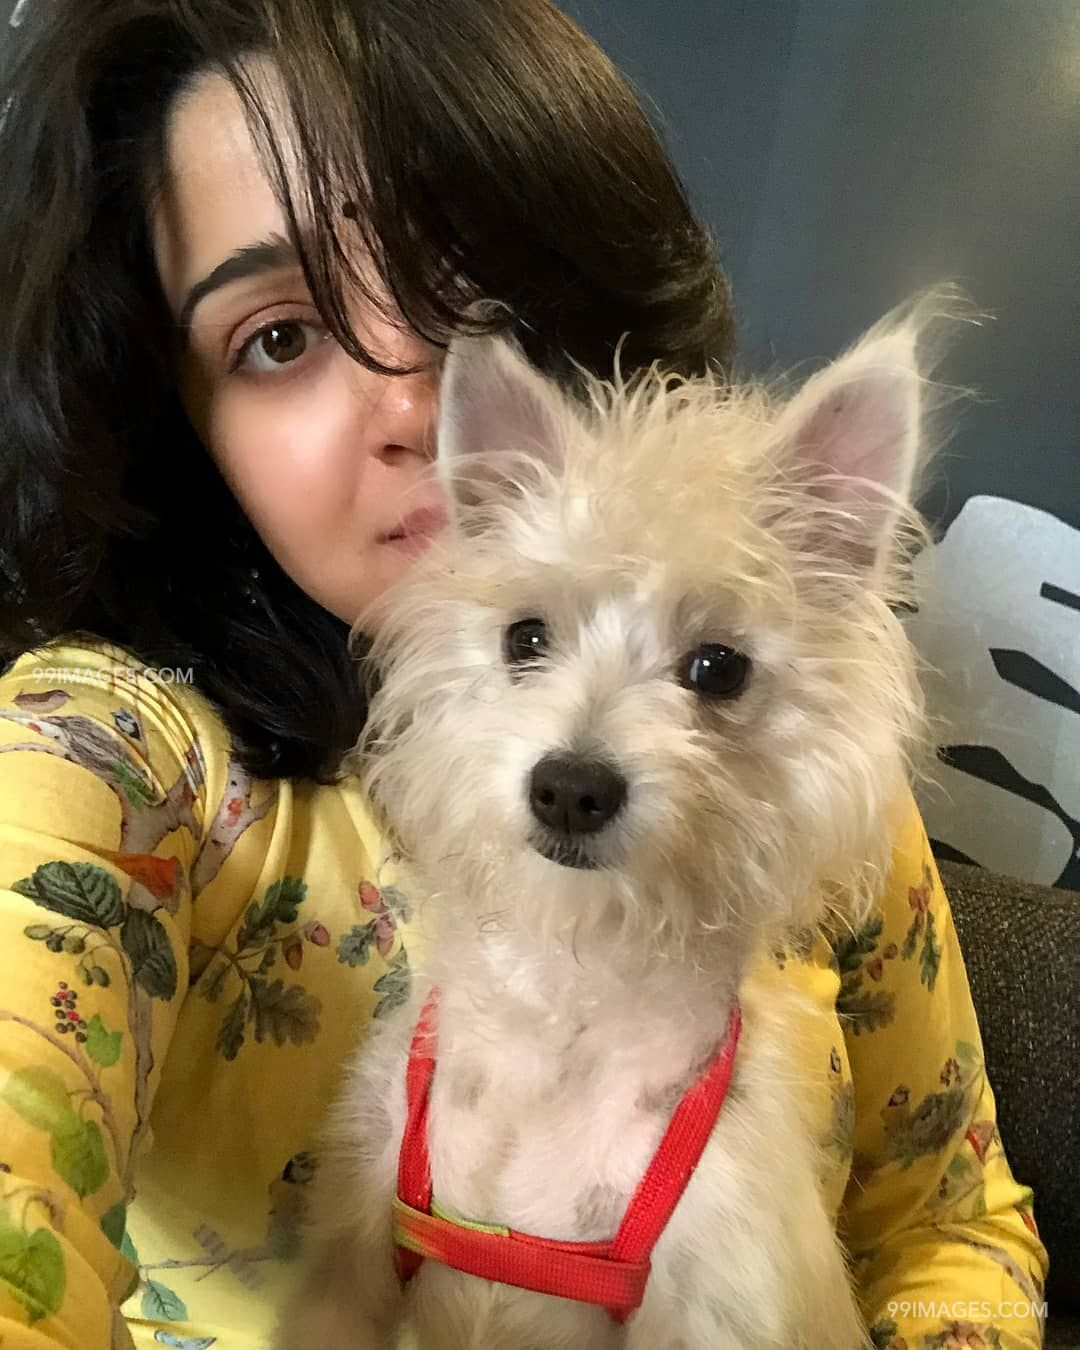 Charmy Kaur Beautiful Photos & Mobile Wallpapers HD (Android/iPhone) (1080p) (25976) - Charmy Kaur